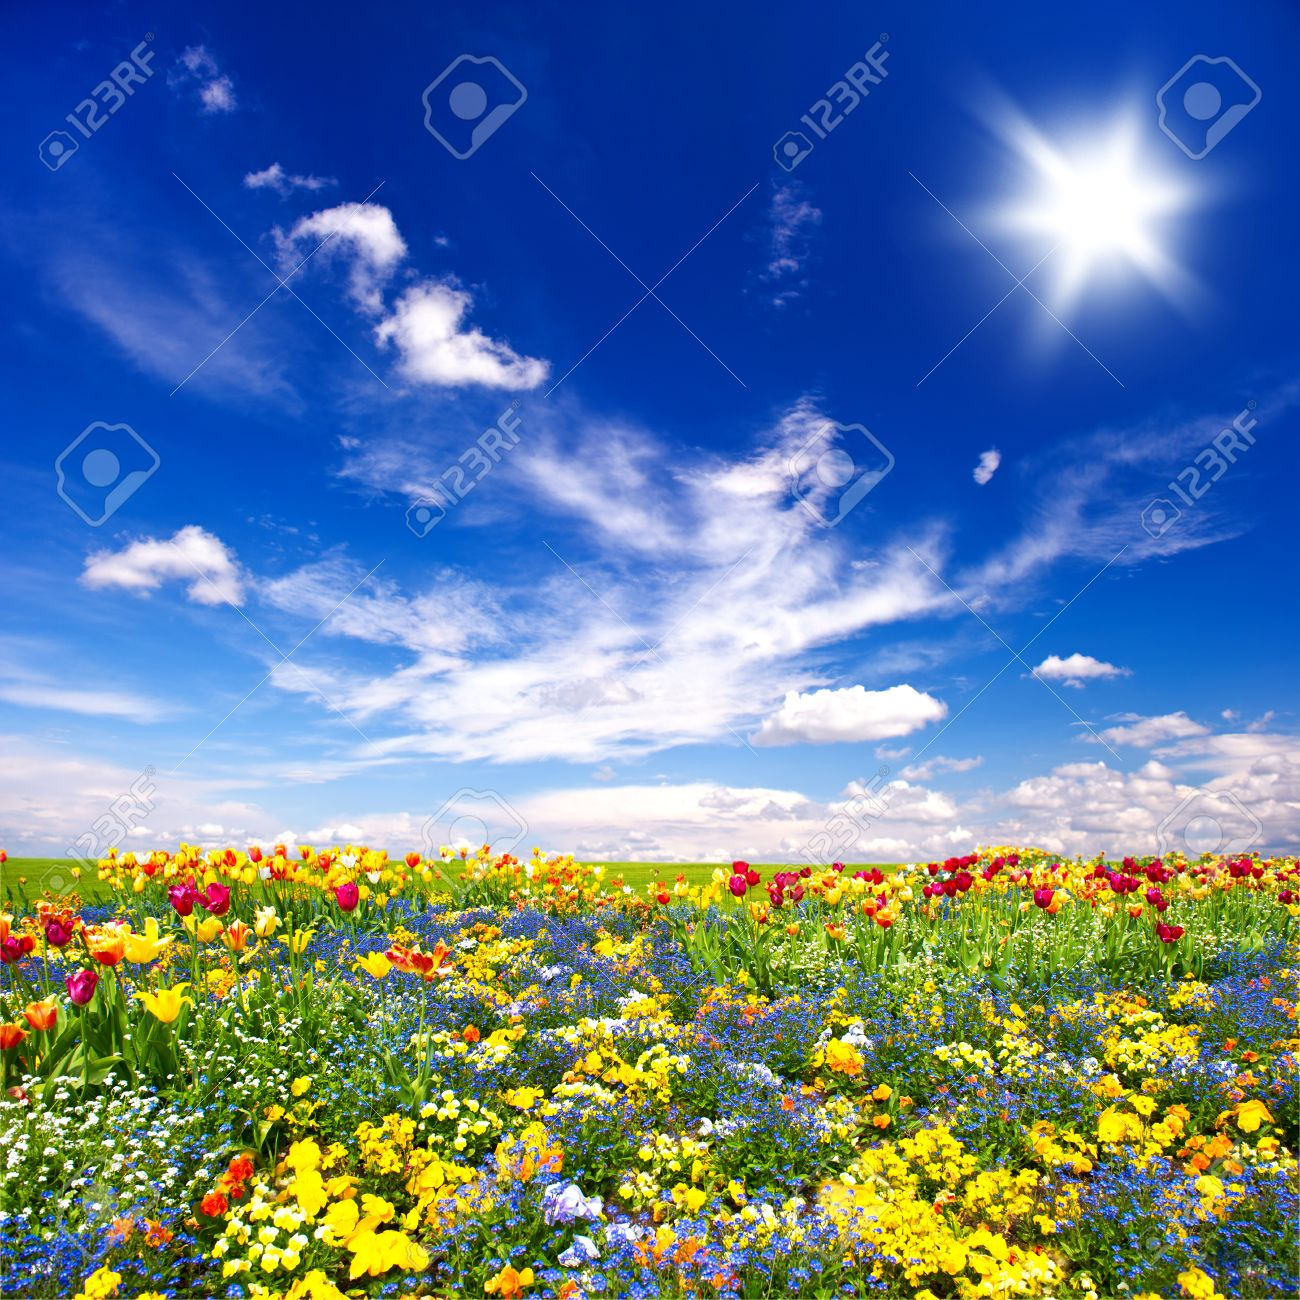 Beautiful flowers meadow and cloudy blue sky nature landscape stock beautiful flowers meadow and cloudy blue sky nature landscape stock photo 33333940 izmirmasajfo